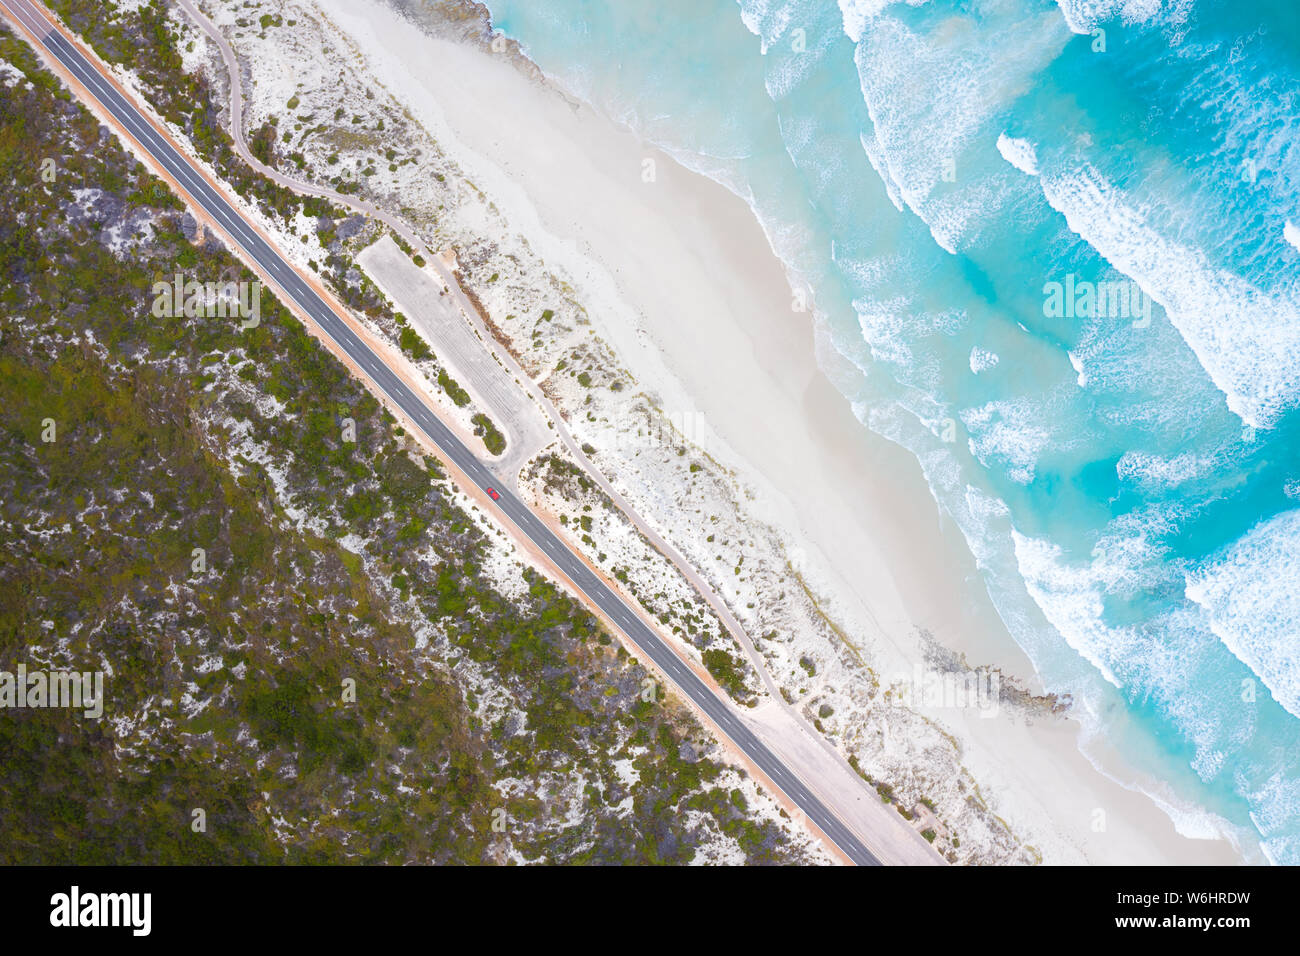 Aerial View of Great Ocean Drive in Esperance, Western Australia, Australia. Travel and Vacation concept. Stock Photo